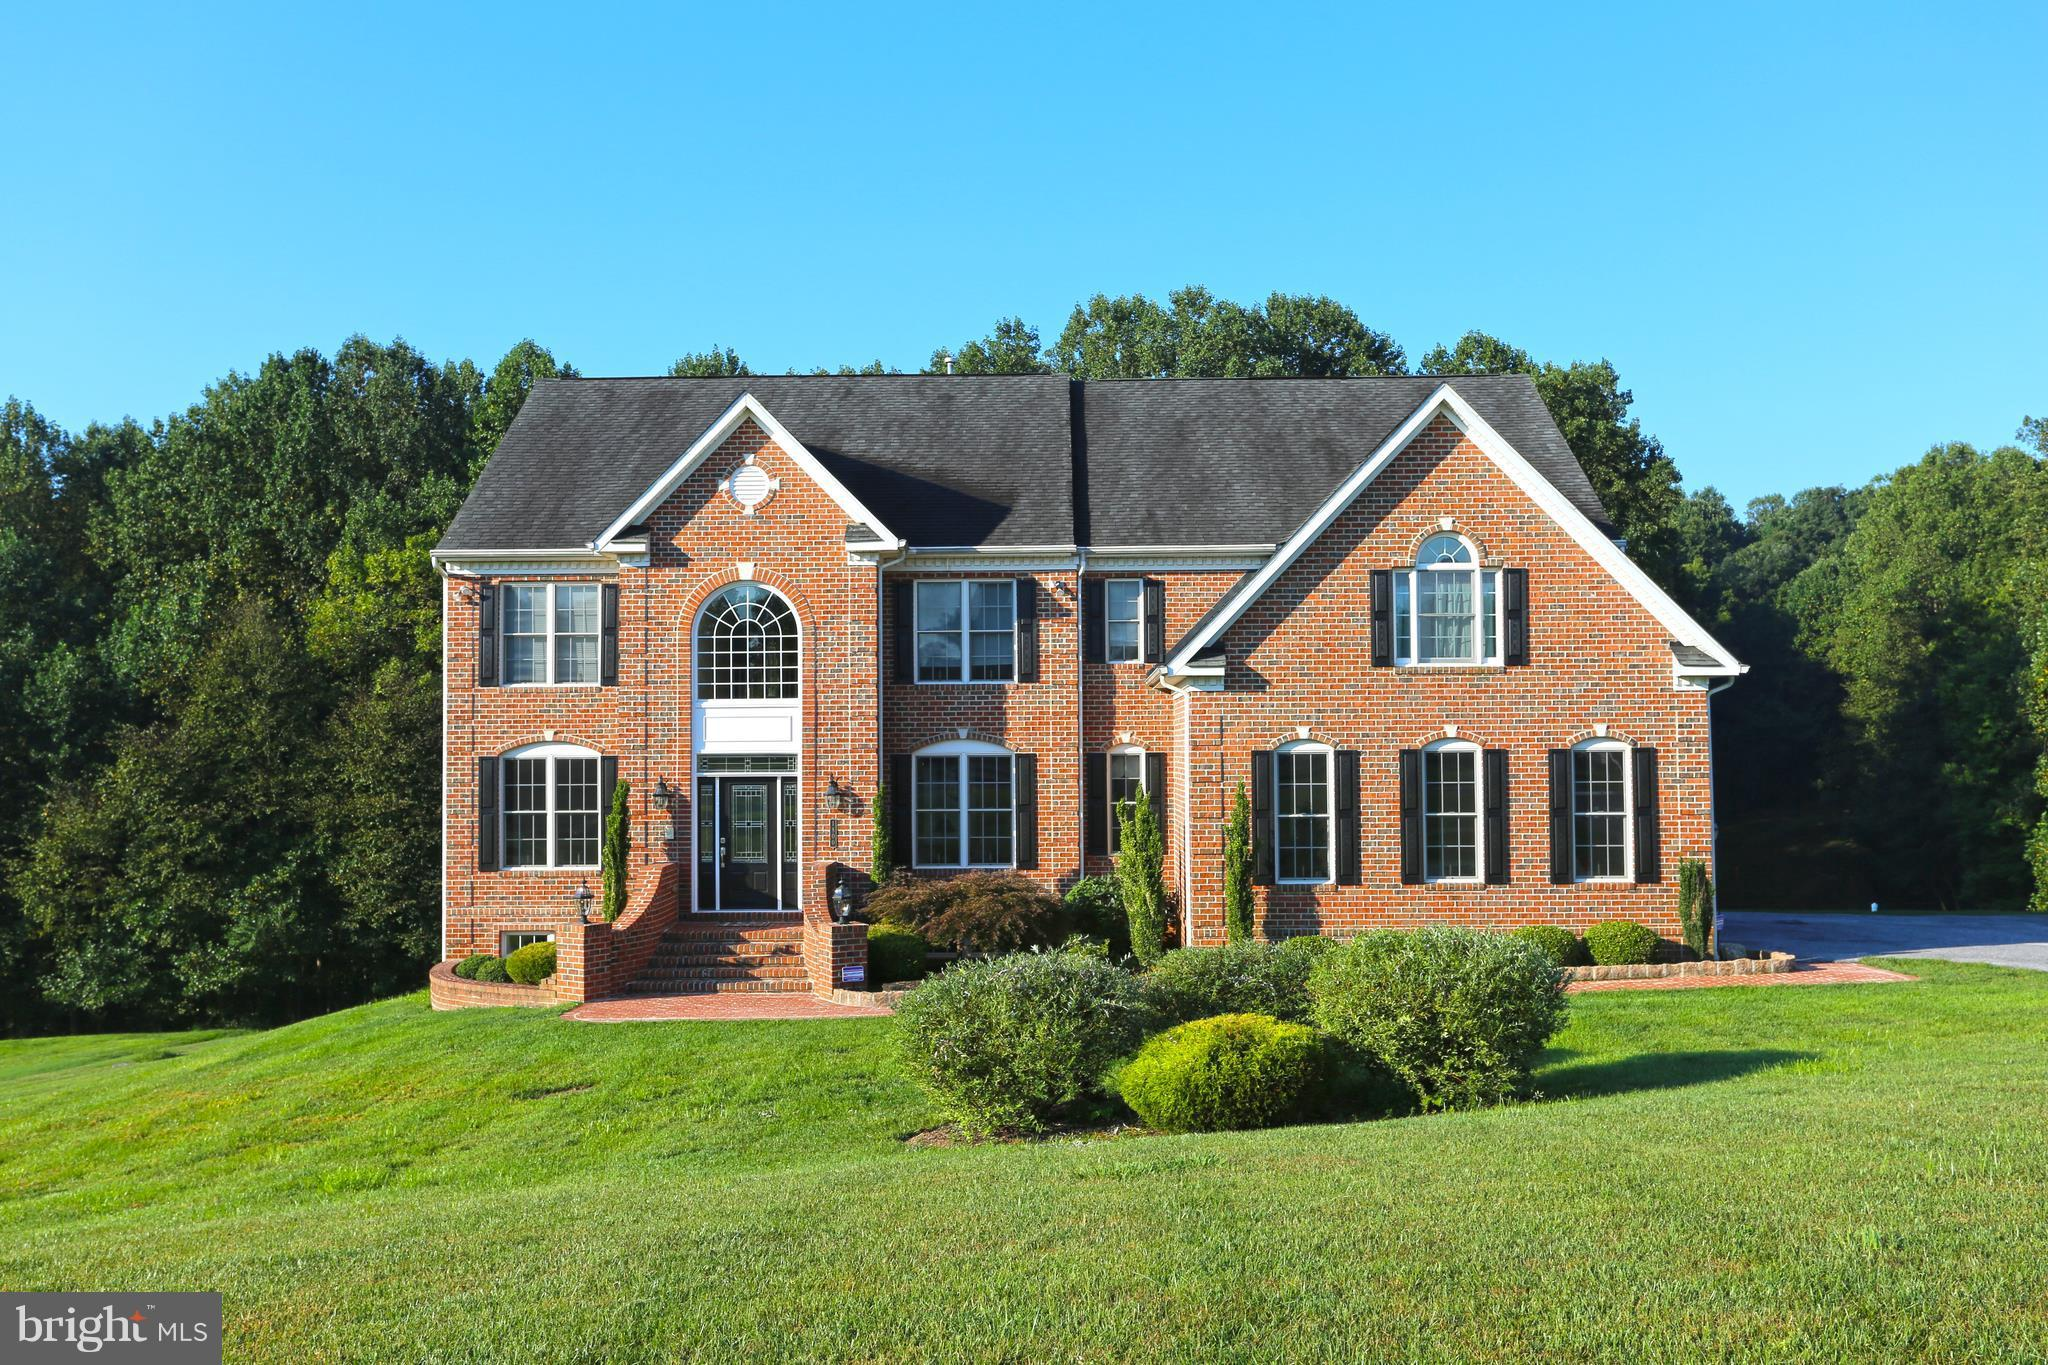 1800 MORNING BROOK DRIVE, FOREST HILL, MD 21050